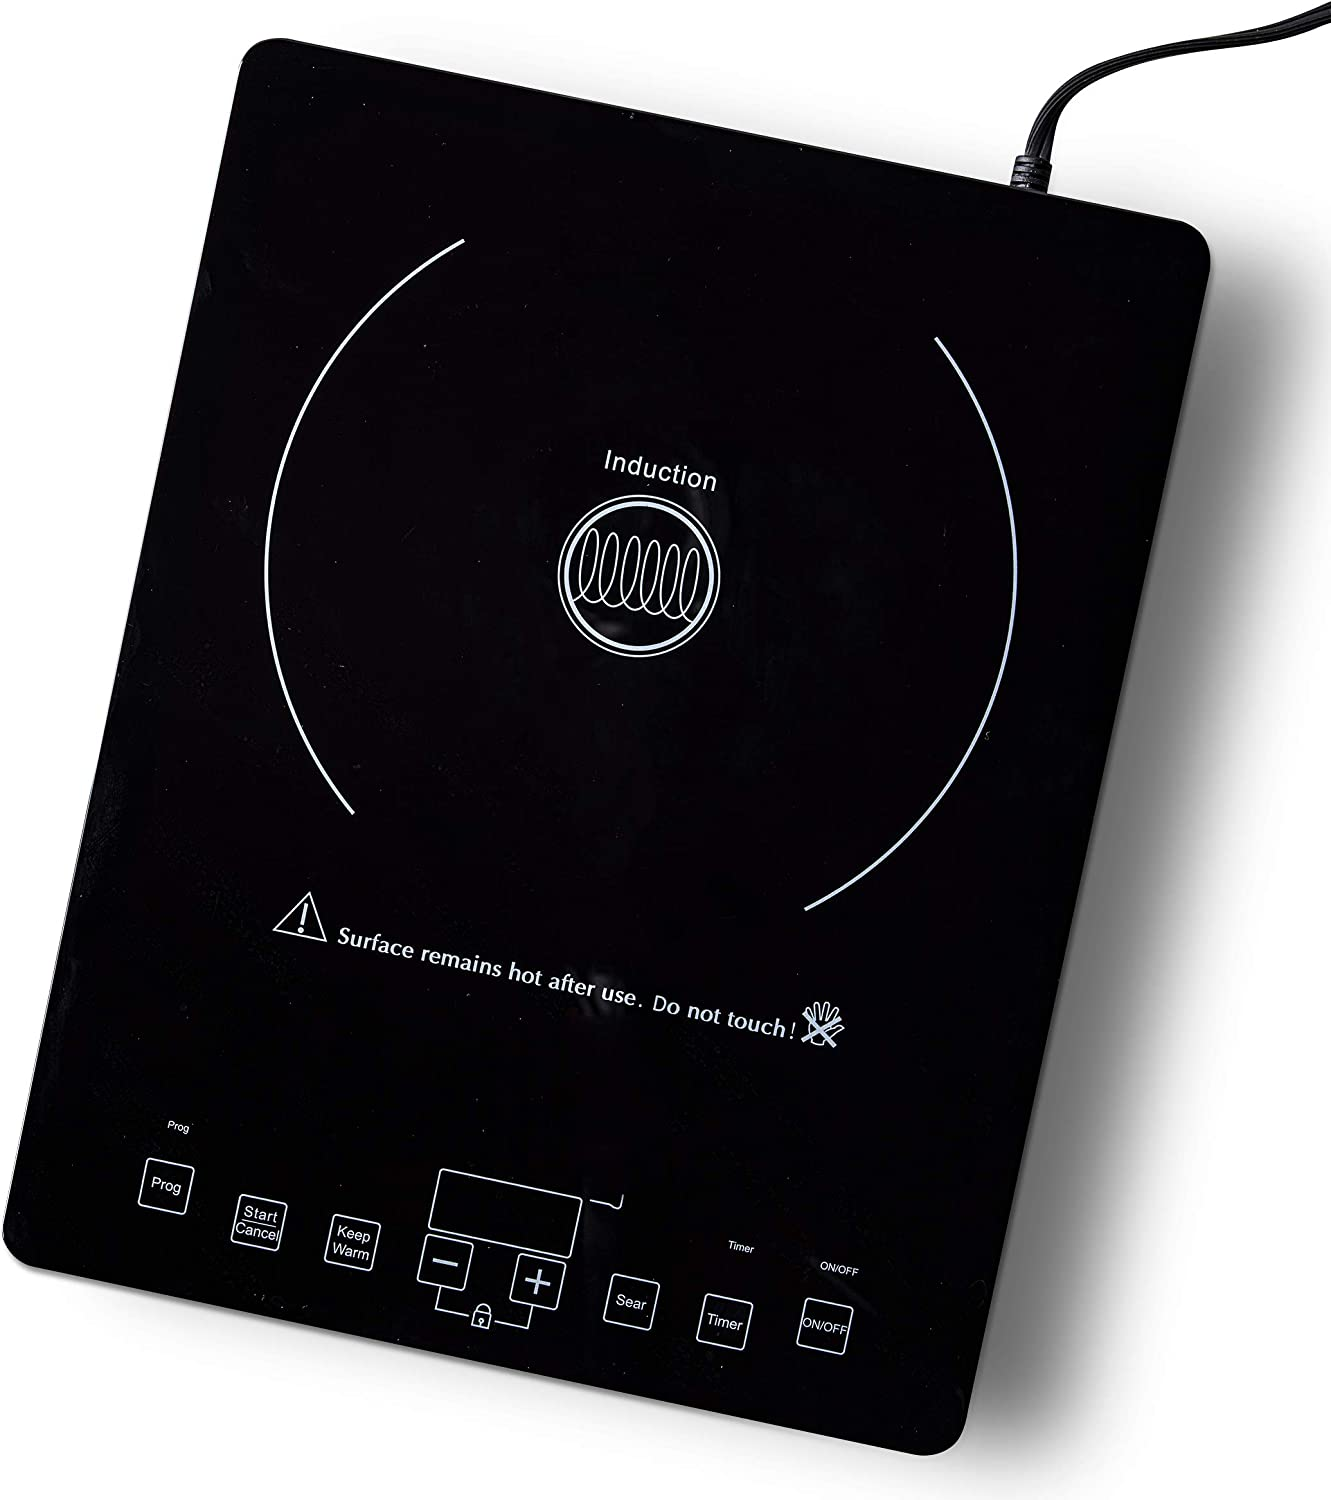 GreenPan CC002900-001 Special price for a limited time Cooker Countertop Burner Si Induction One Austin Mall